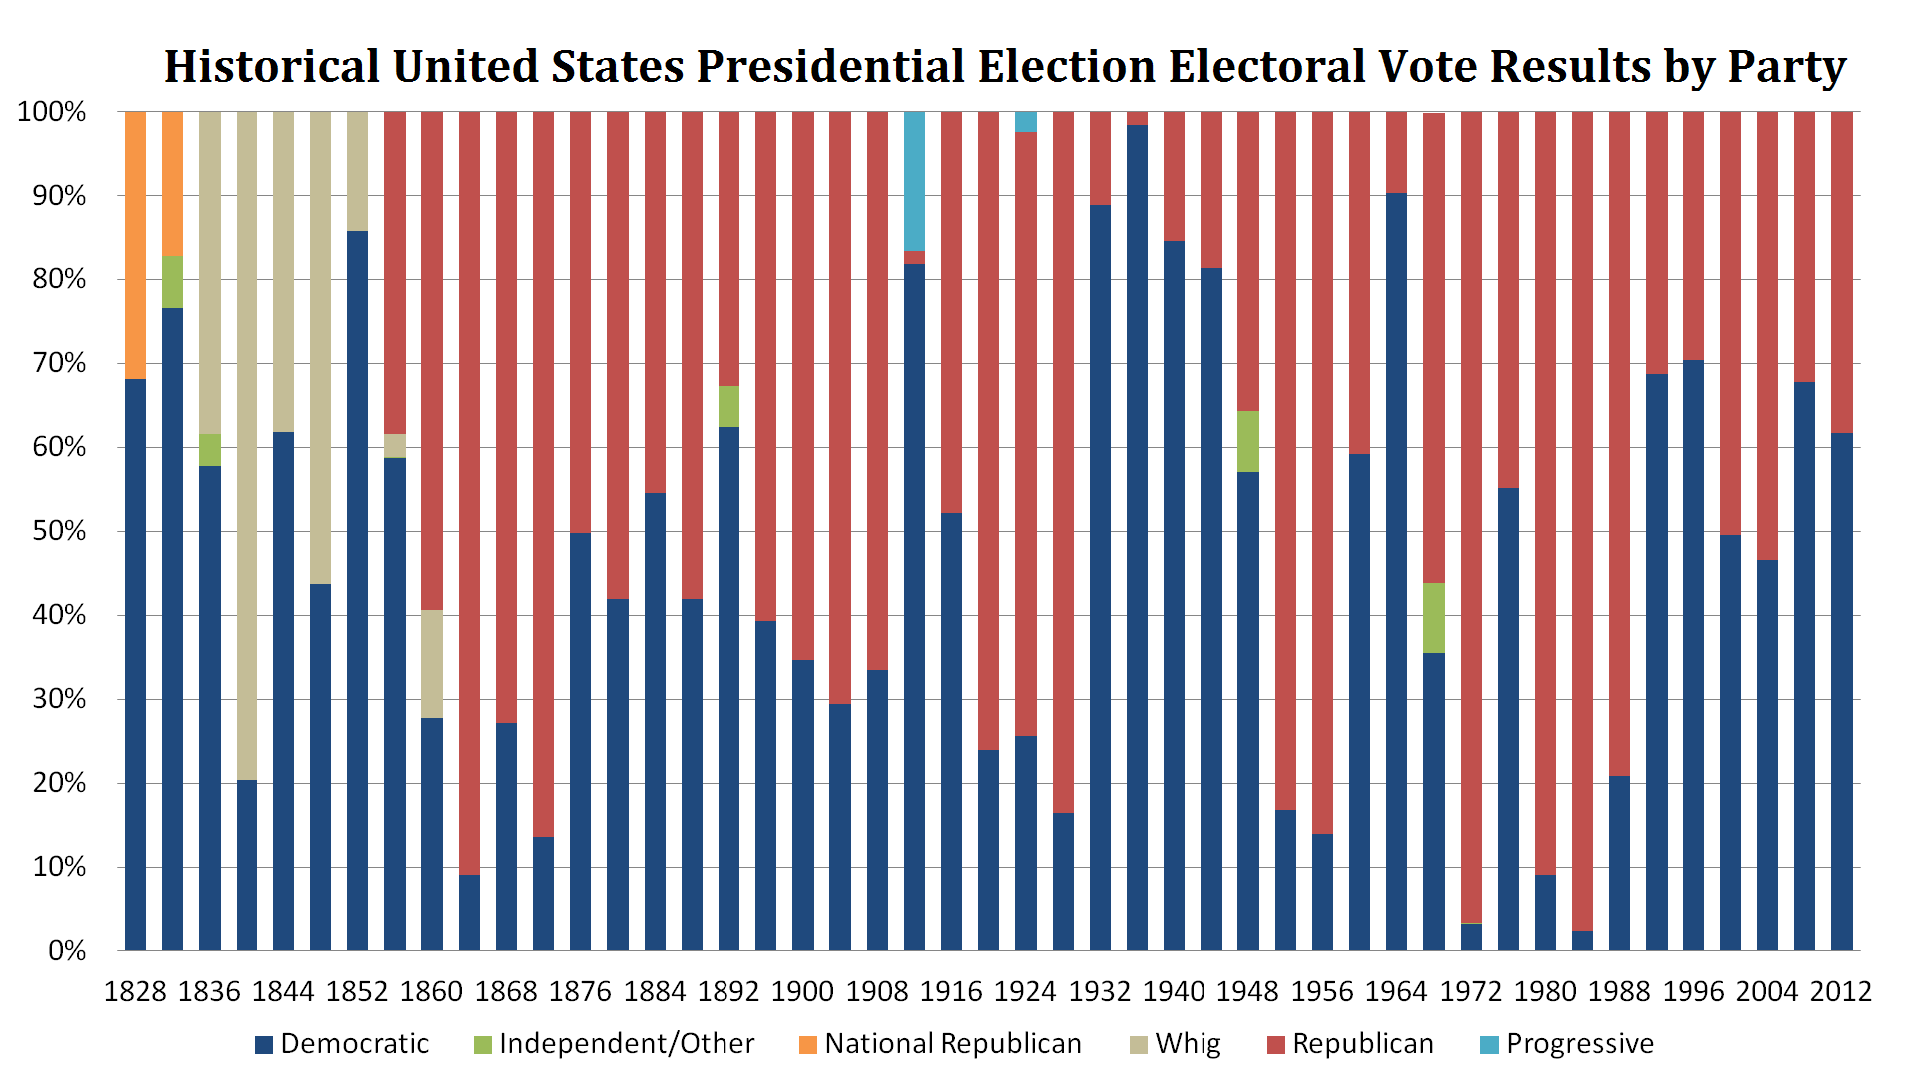 historical united states presidential election electoral vote results in percent by main party affiliations